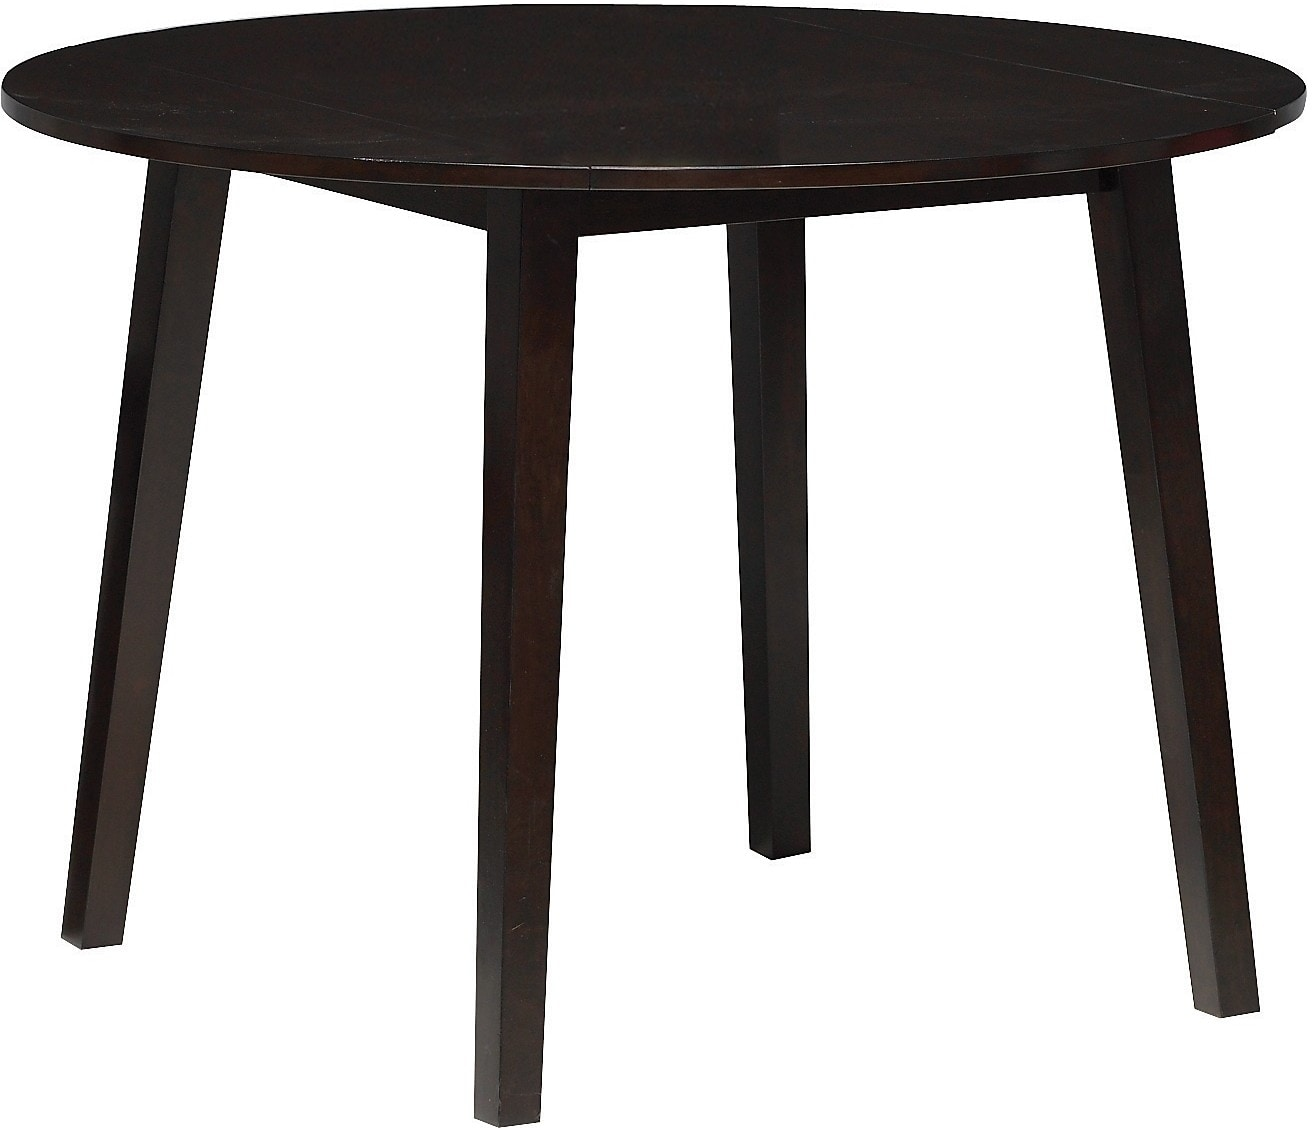 Adara round drop leaf dining table the brick for Round drop leaf dining table